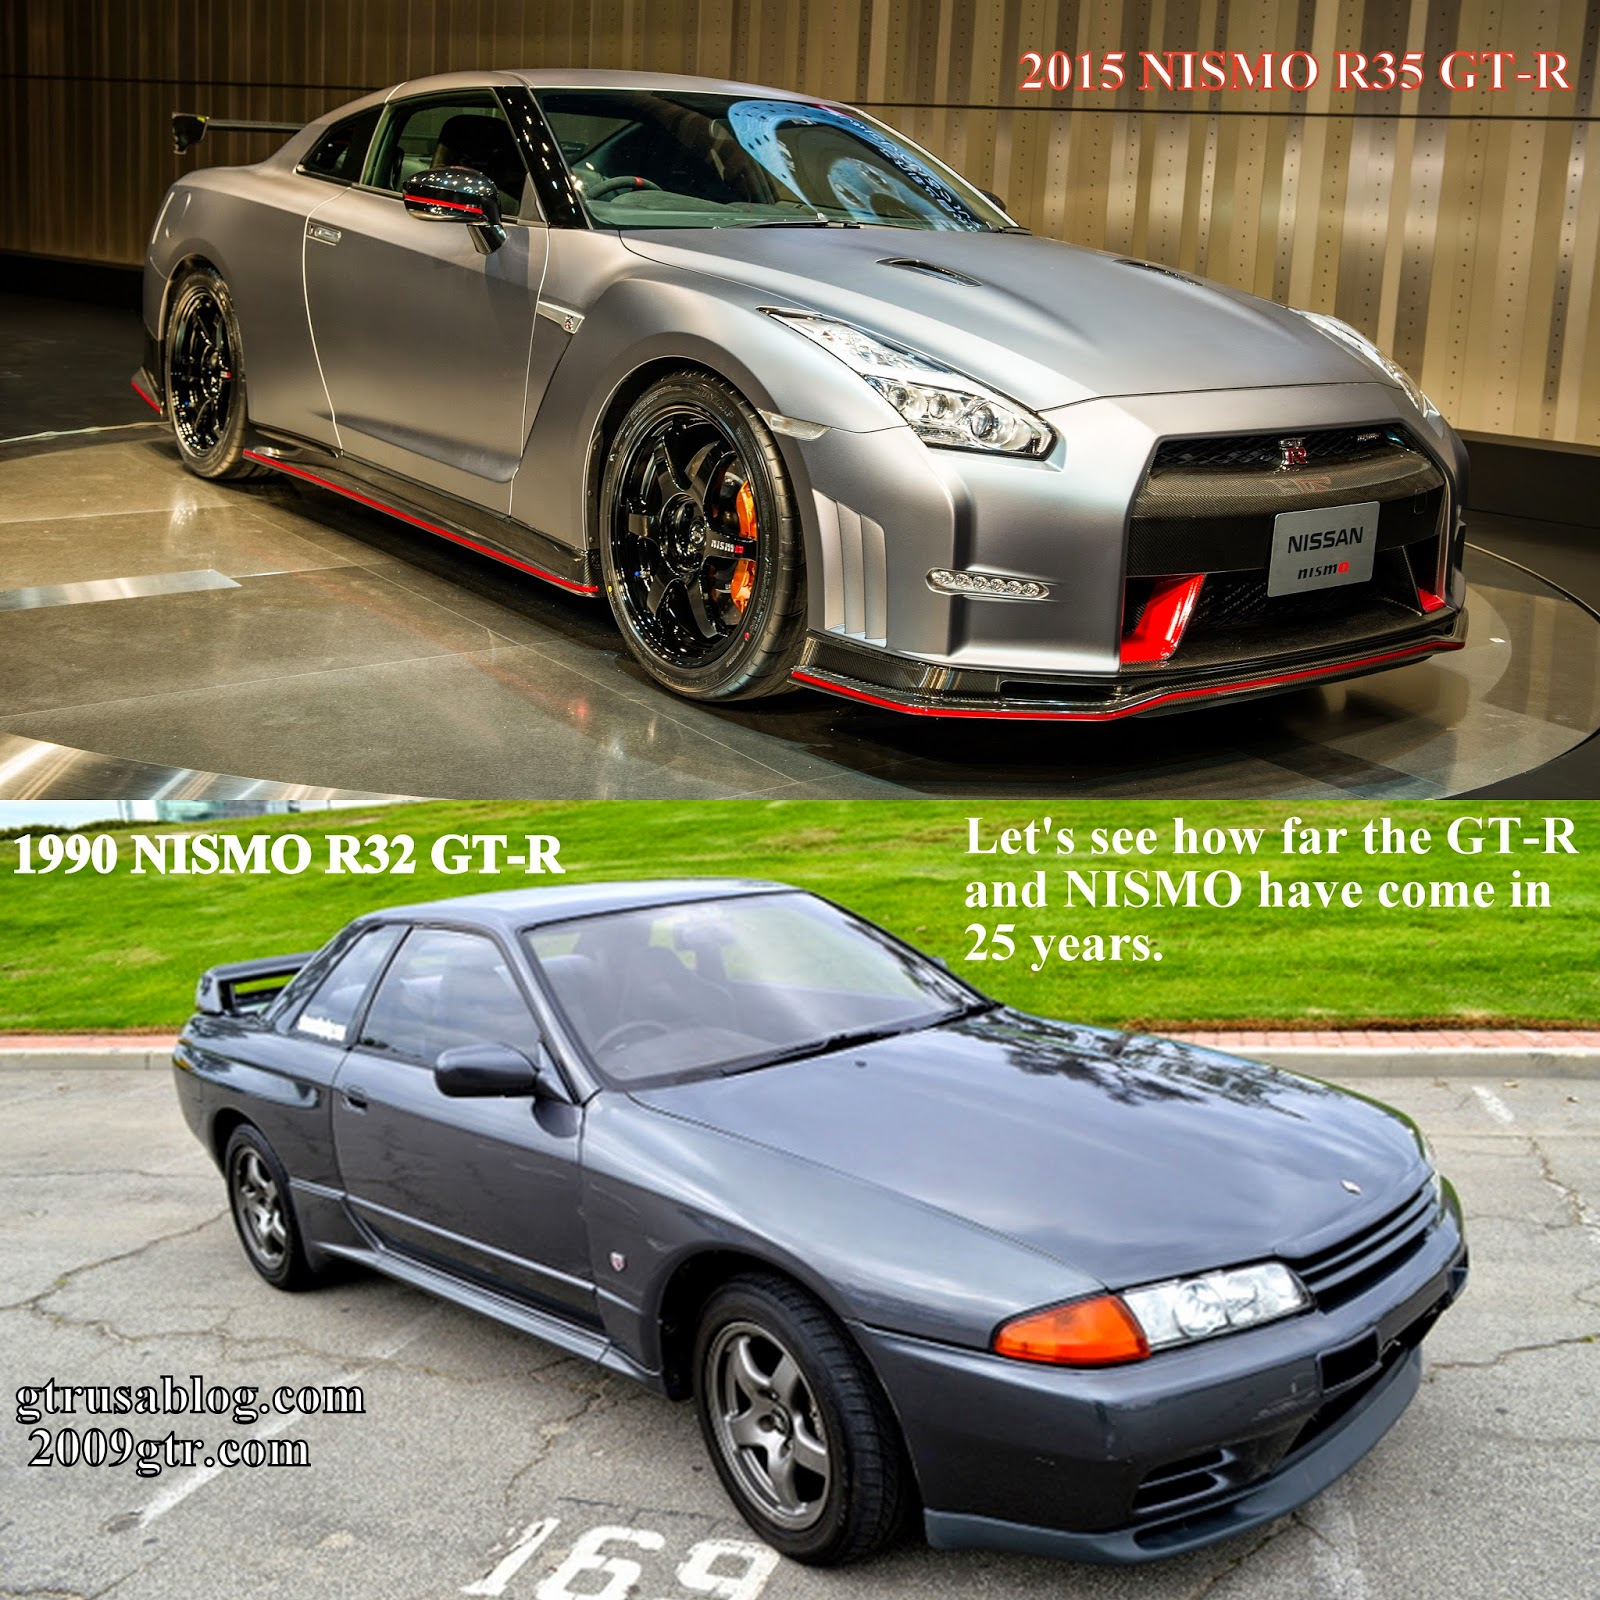 2015 nismo r35 gt r vs 1990 nismo r32 gt r. Black Bedroom Furniture Sets. Home Design Ideas